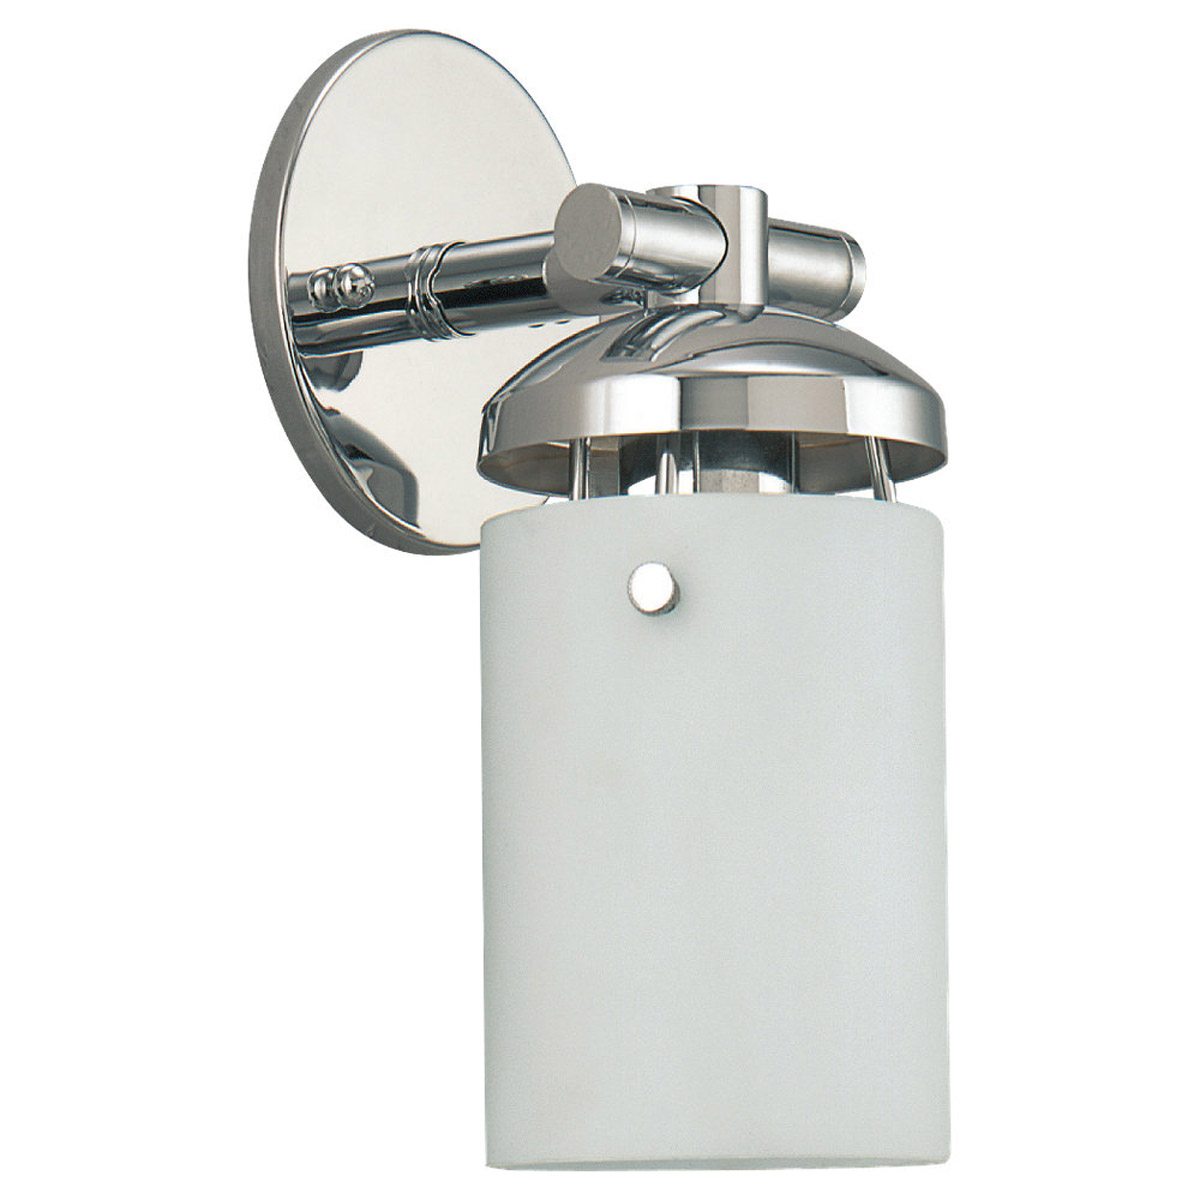 Sea Gull Lighting Bliss 1 Light Bath Vanity in Chrome 41044-05